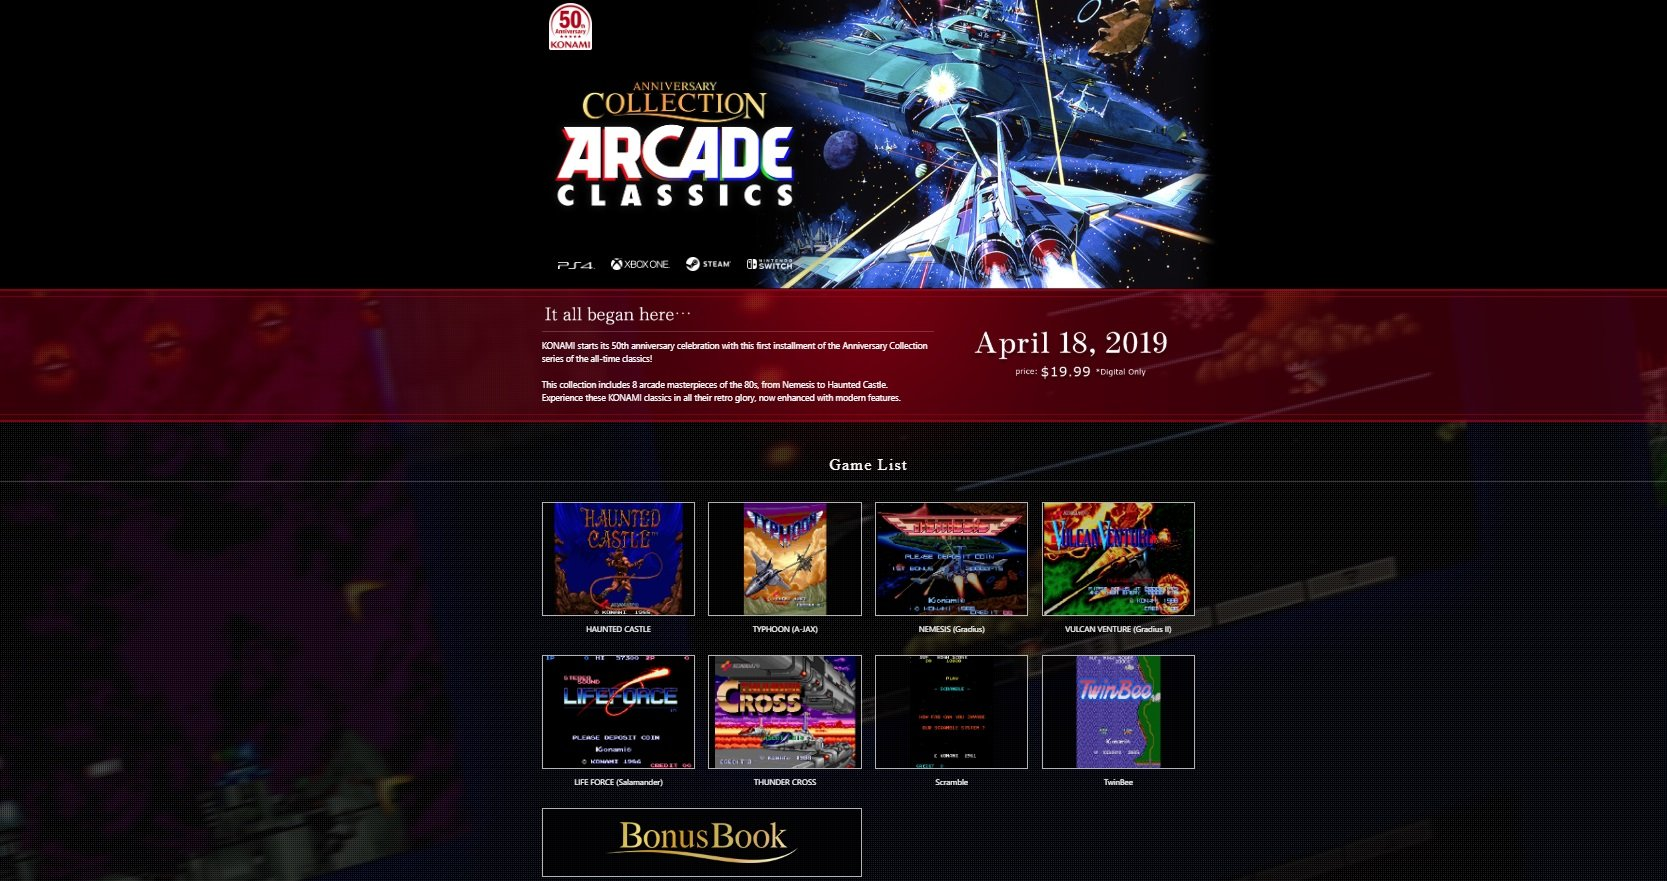 The first Anniversary Collection to release is the Arcade Classics set which will be available on Xbox One, PlayStation 4, Nintendo Switch, and PC via Steam starting April 18.